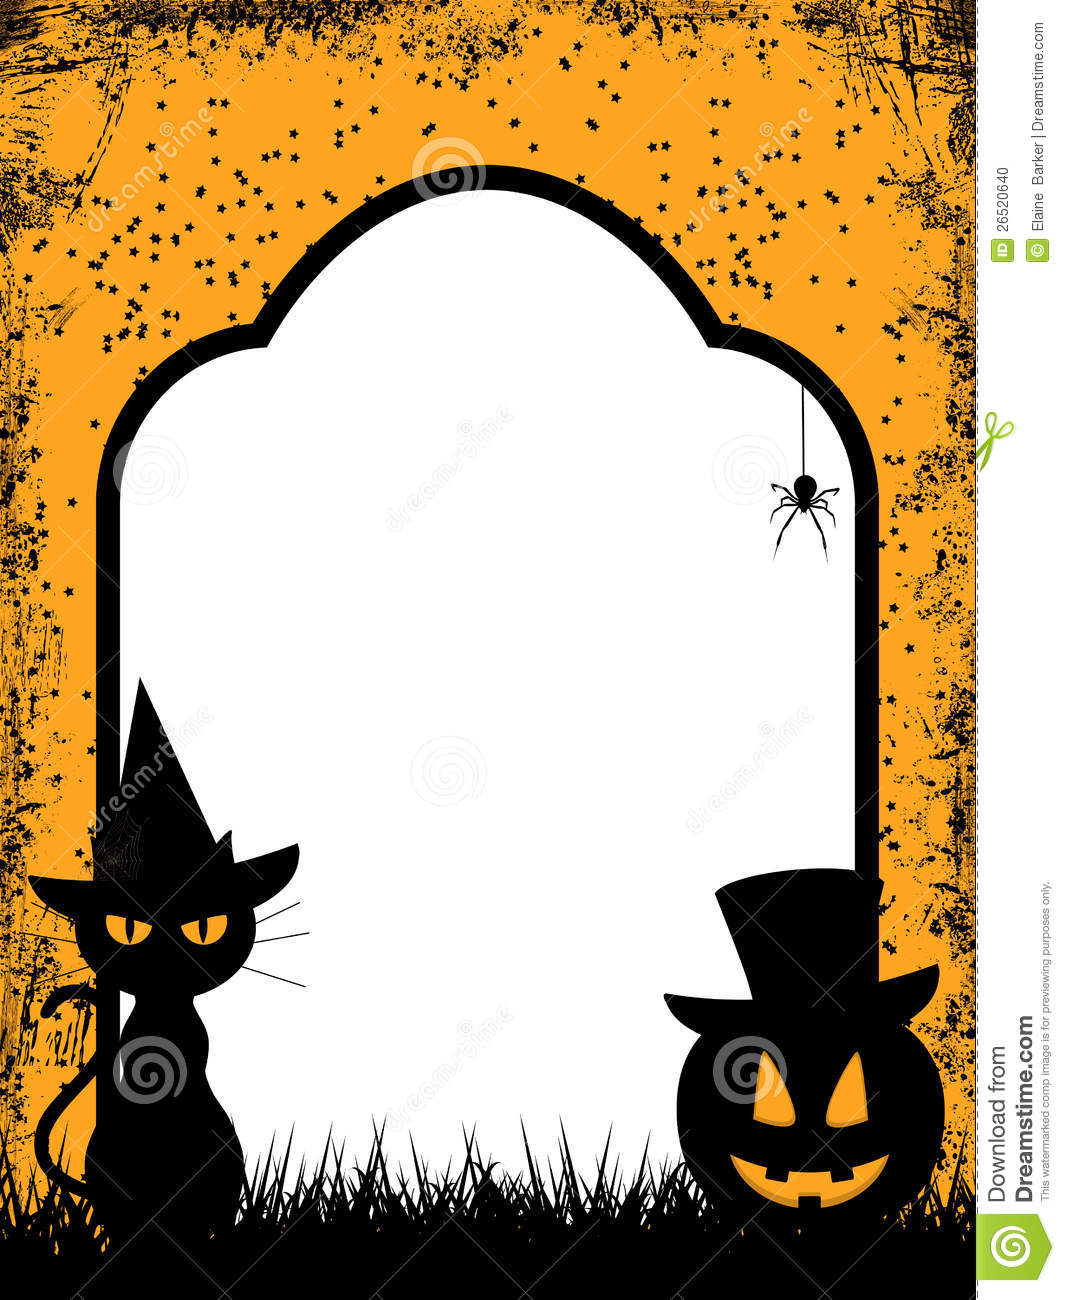 Halloween Border Background Stock Photo - Image: 26520640